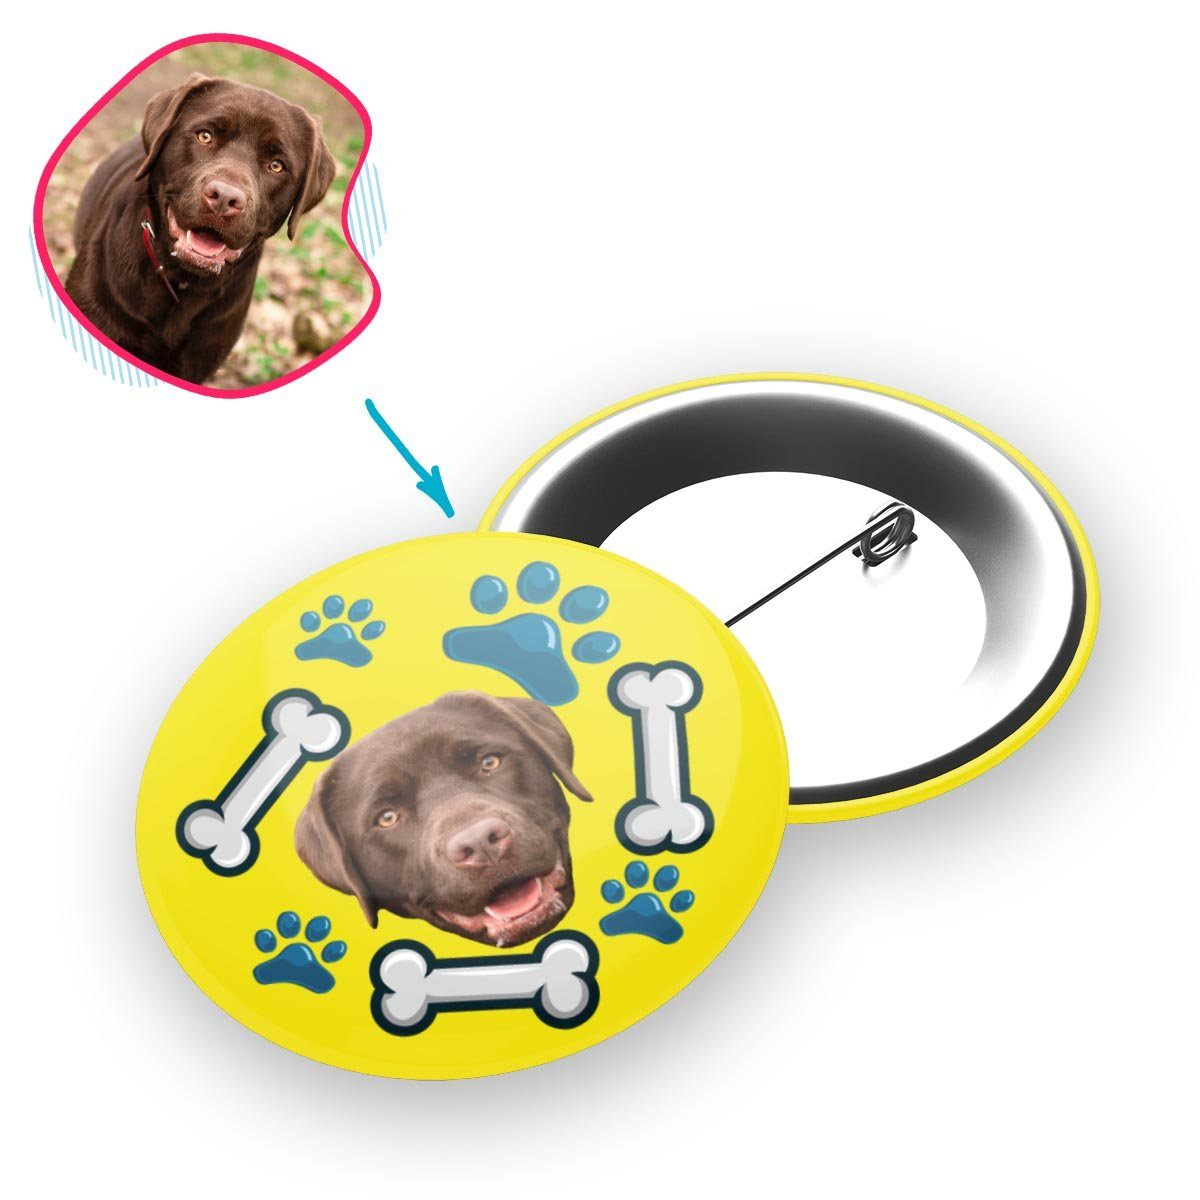 yellow Dog pin personalized with photo of face printed on it